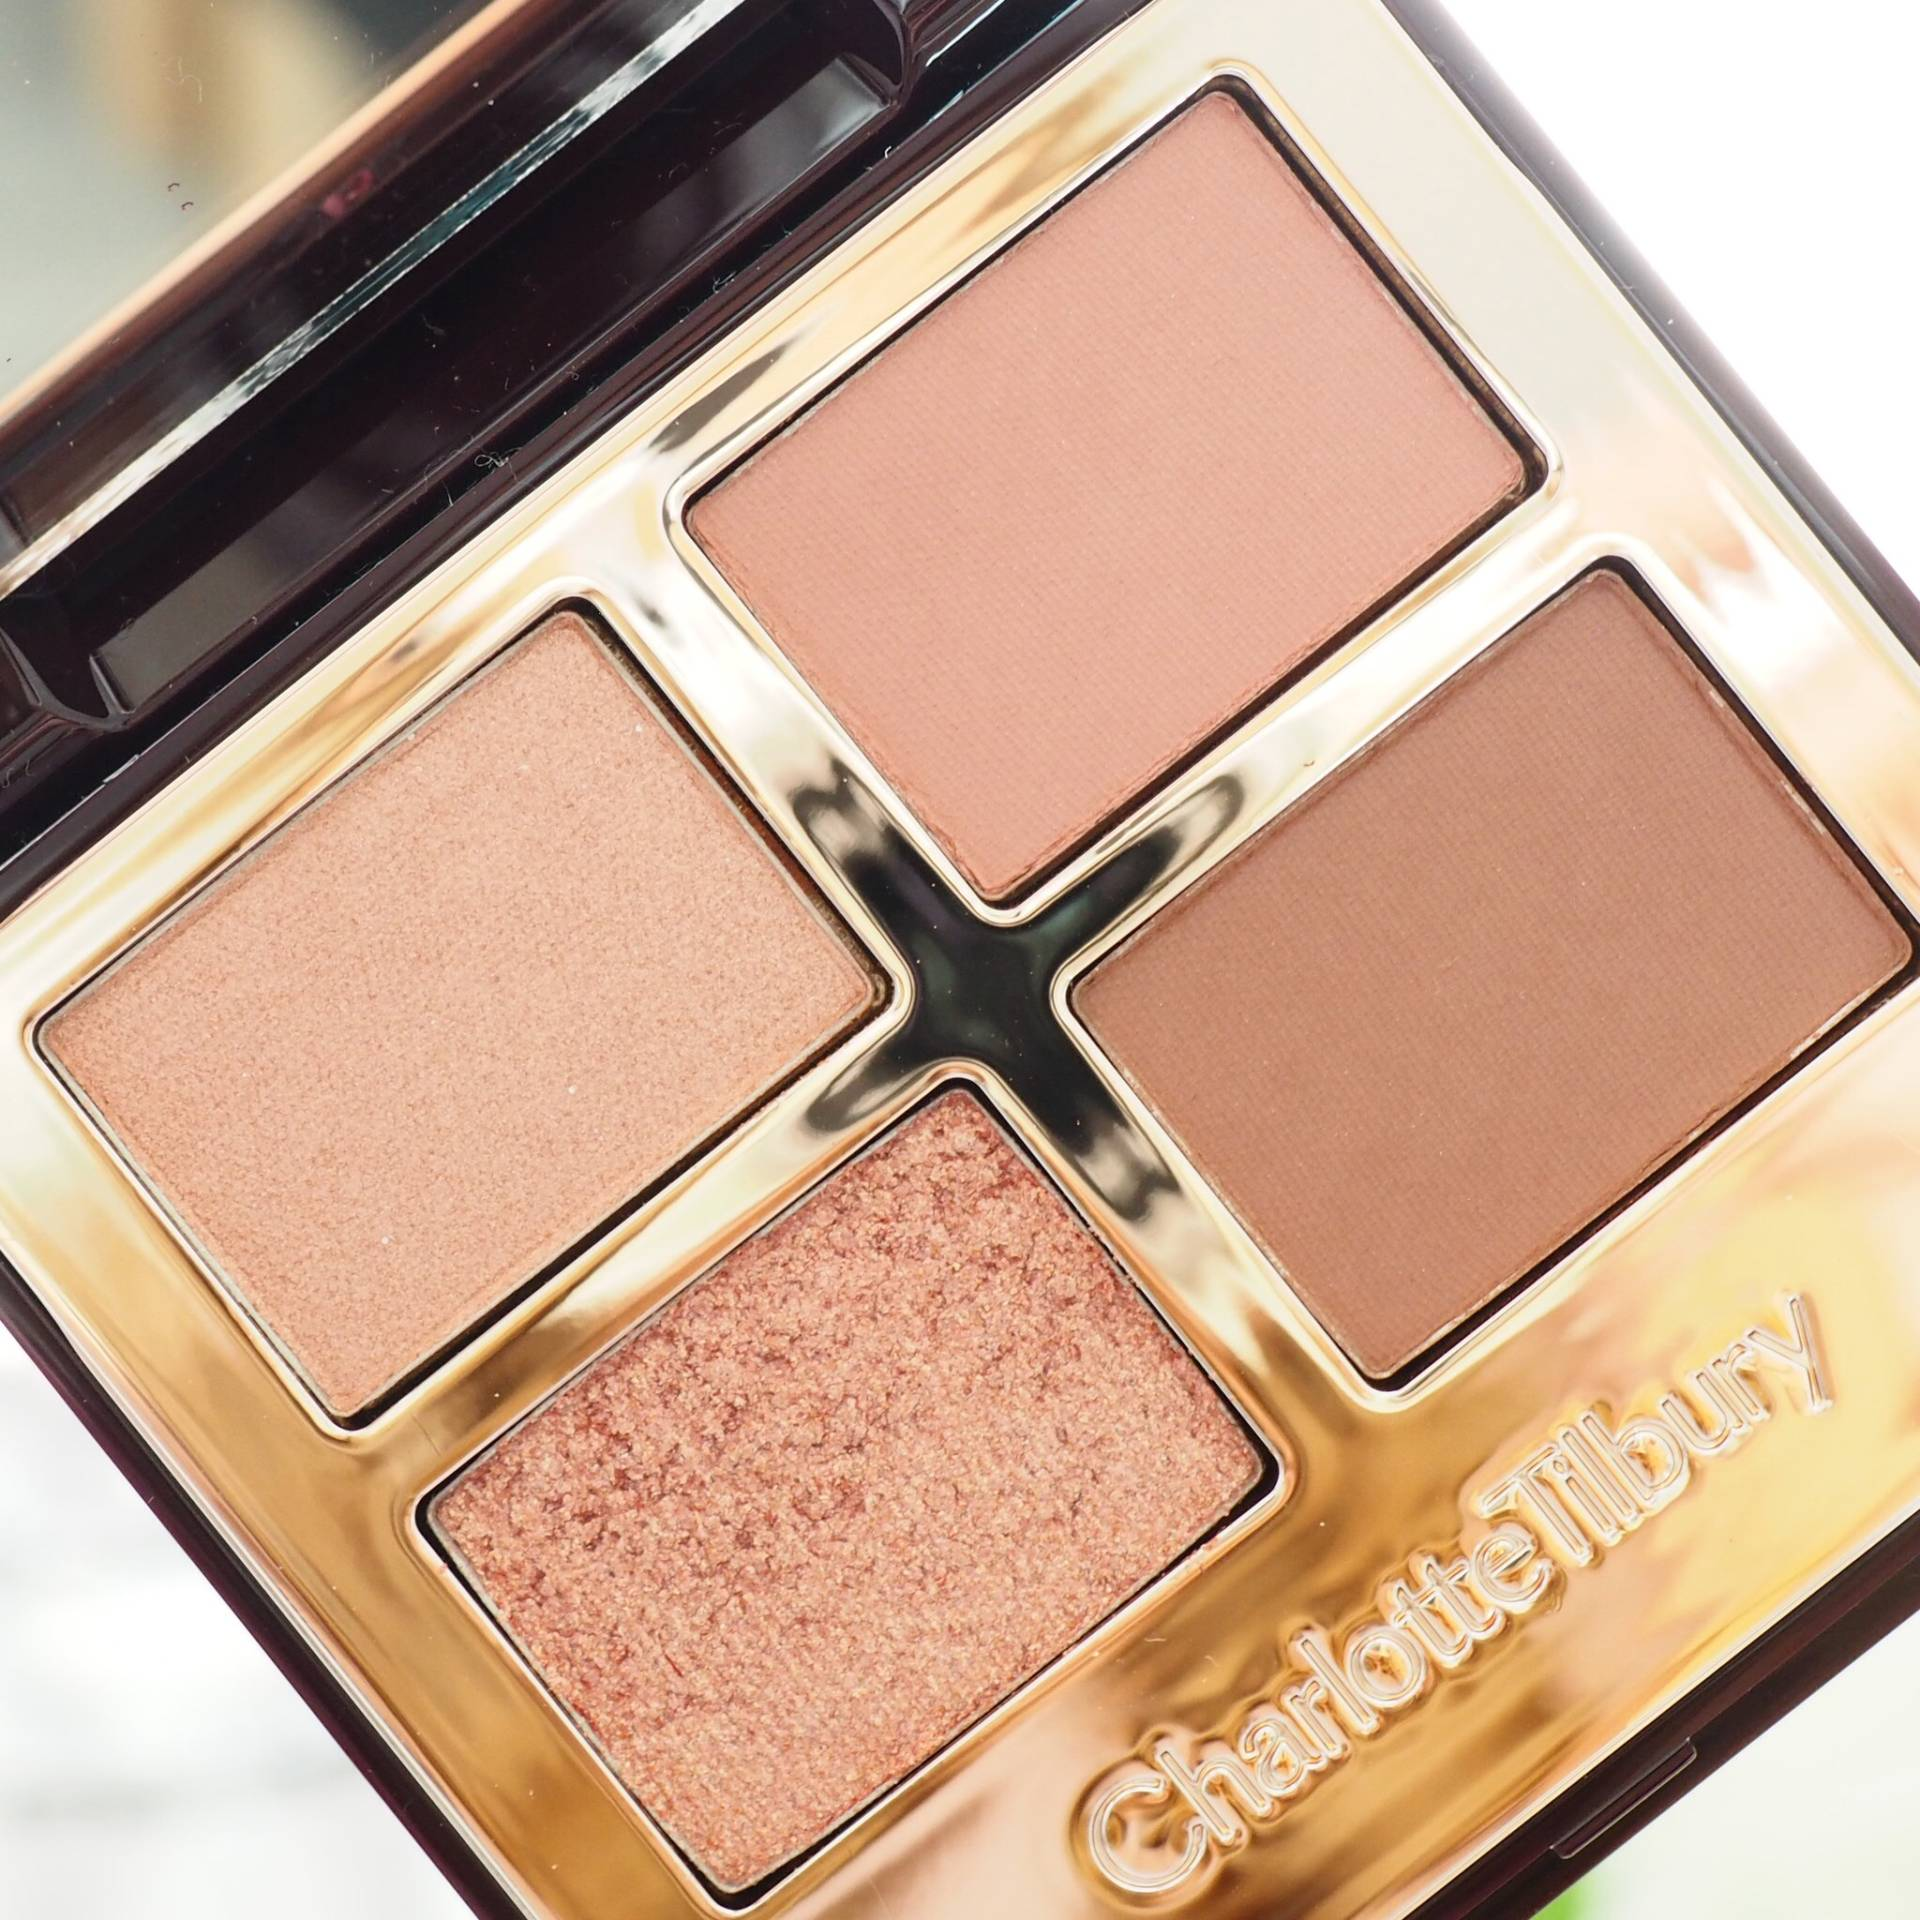 Charlotte-Tilbury-Pillow-Talk-Eye-Shadow